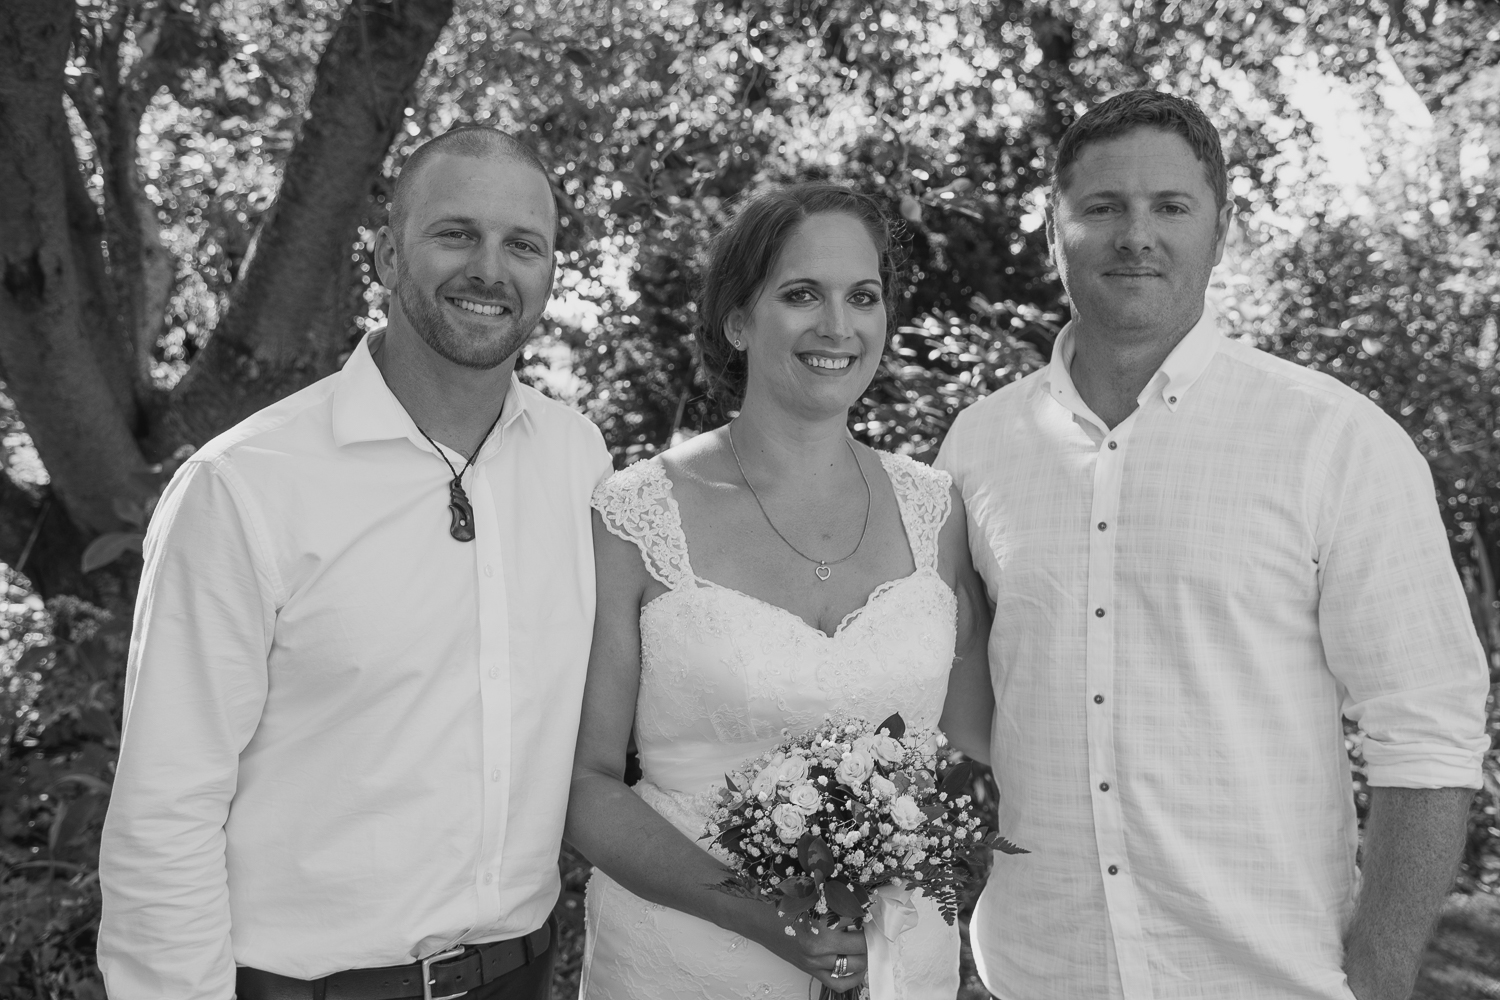 bride-with-her-brothers-on-wedding-day.jpg